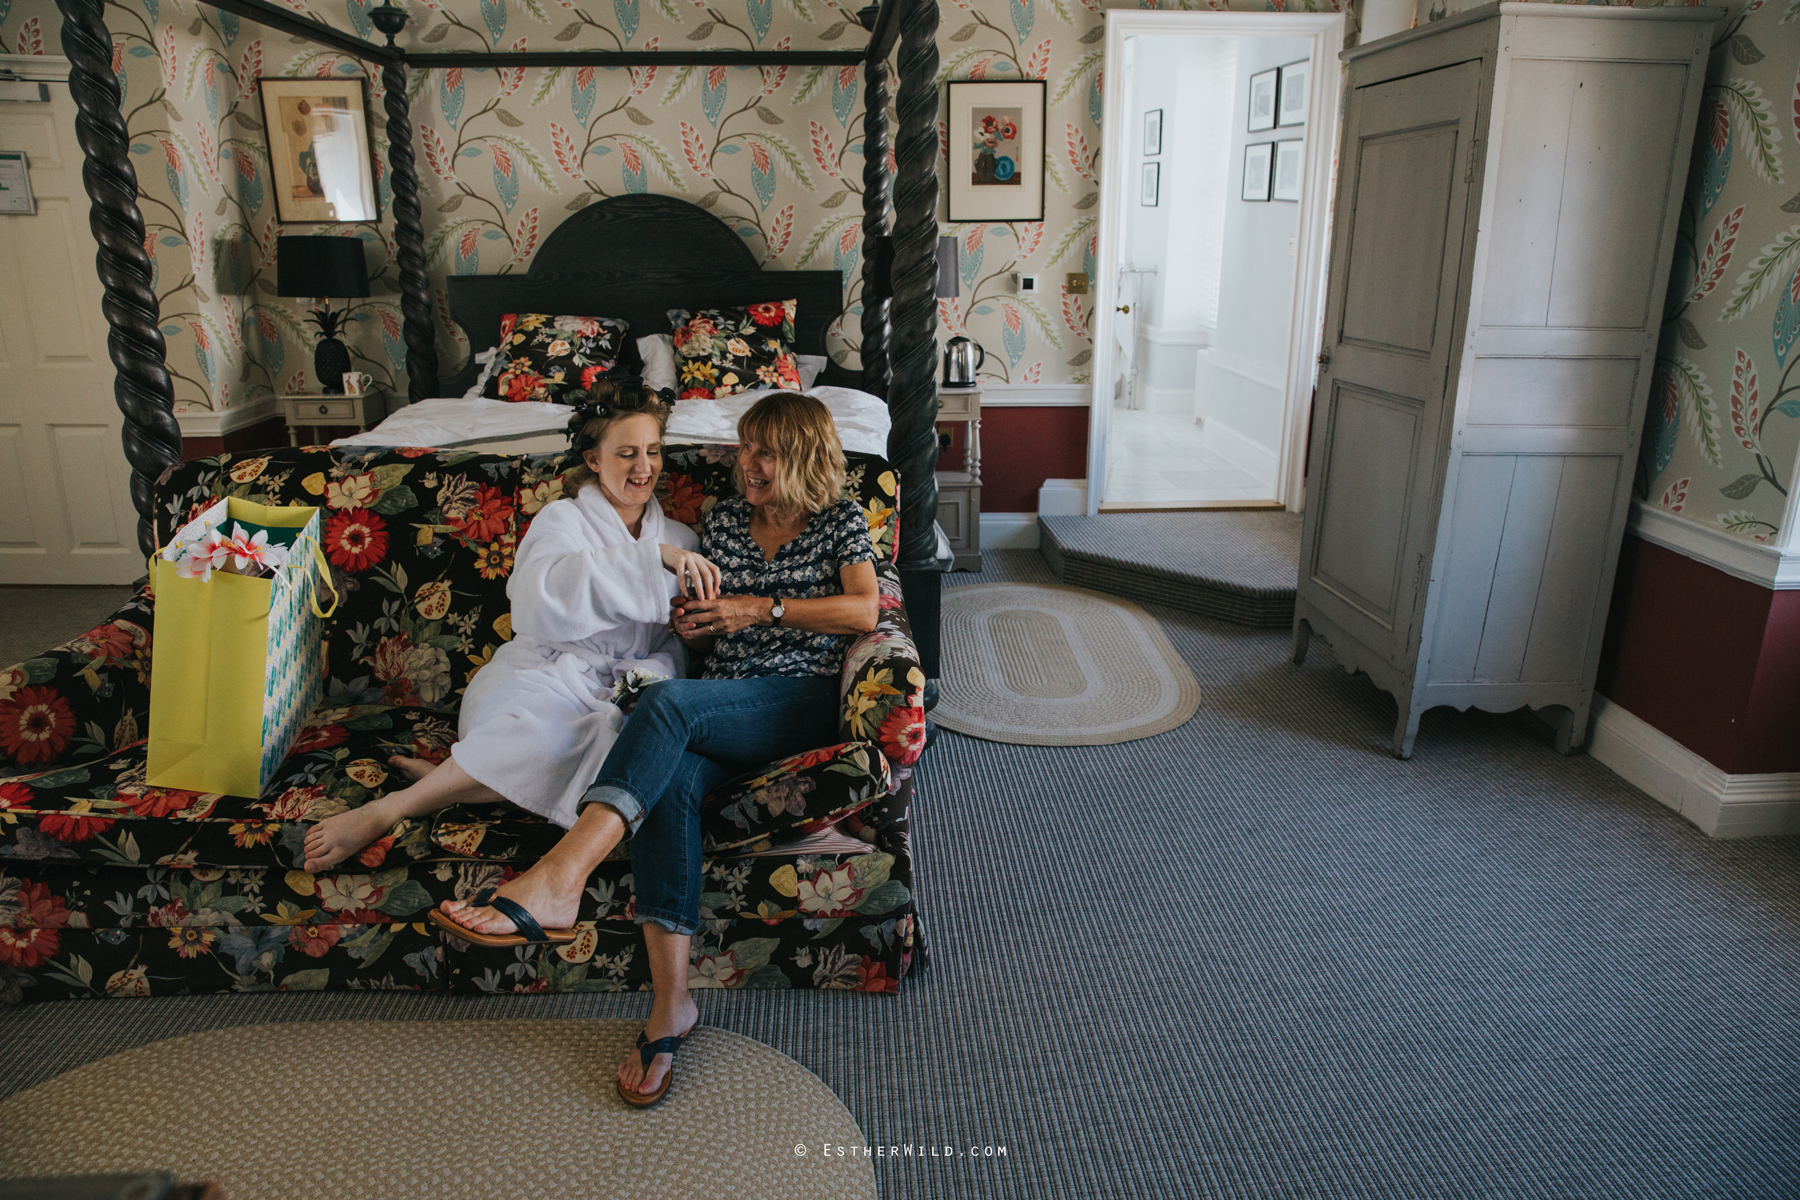 Assembly_House_Norwich_Norfolk_Esther_Wild_Photographer_IMG_0156.jpg